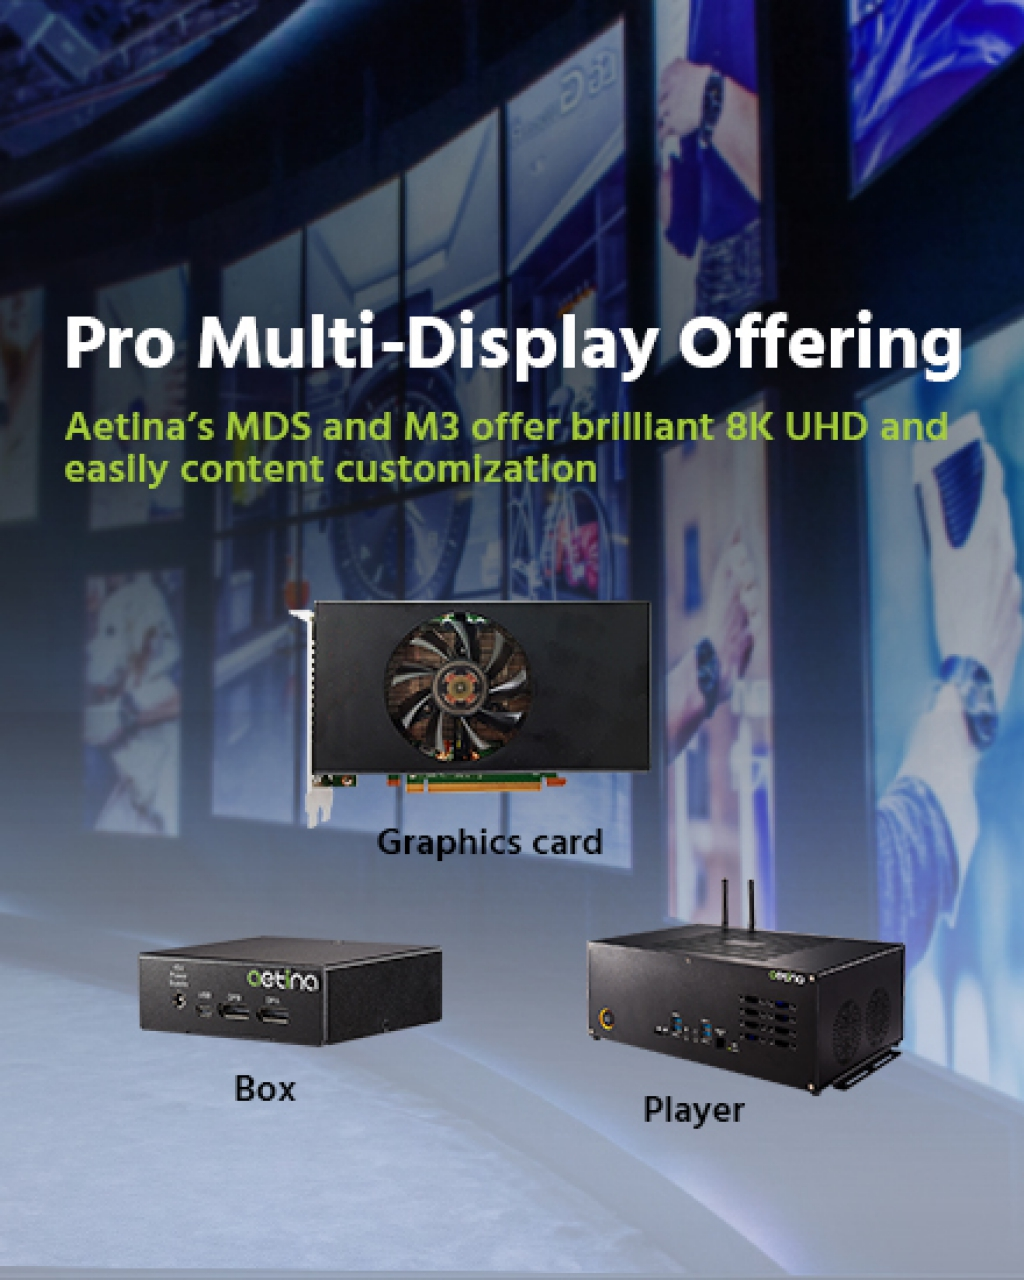 Aetina MDS and M3 offer brilliant 8K UHD and easily content customization